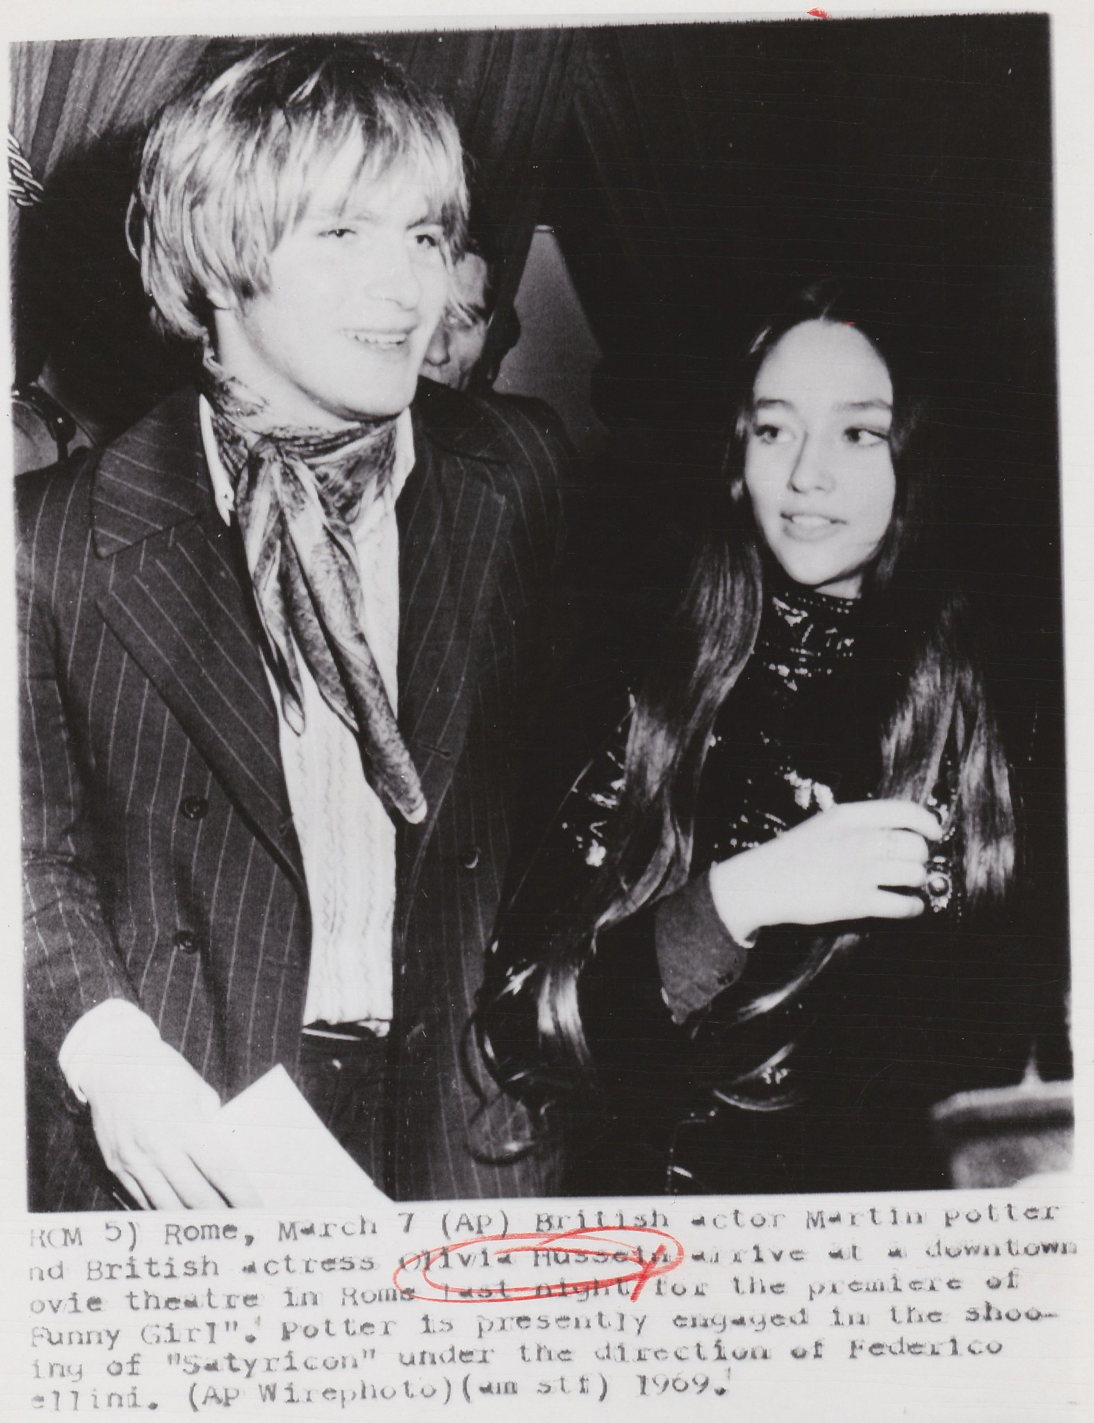 07 March 1969 - with Martin Potter #OliviaHussey